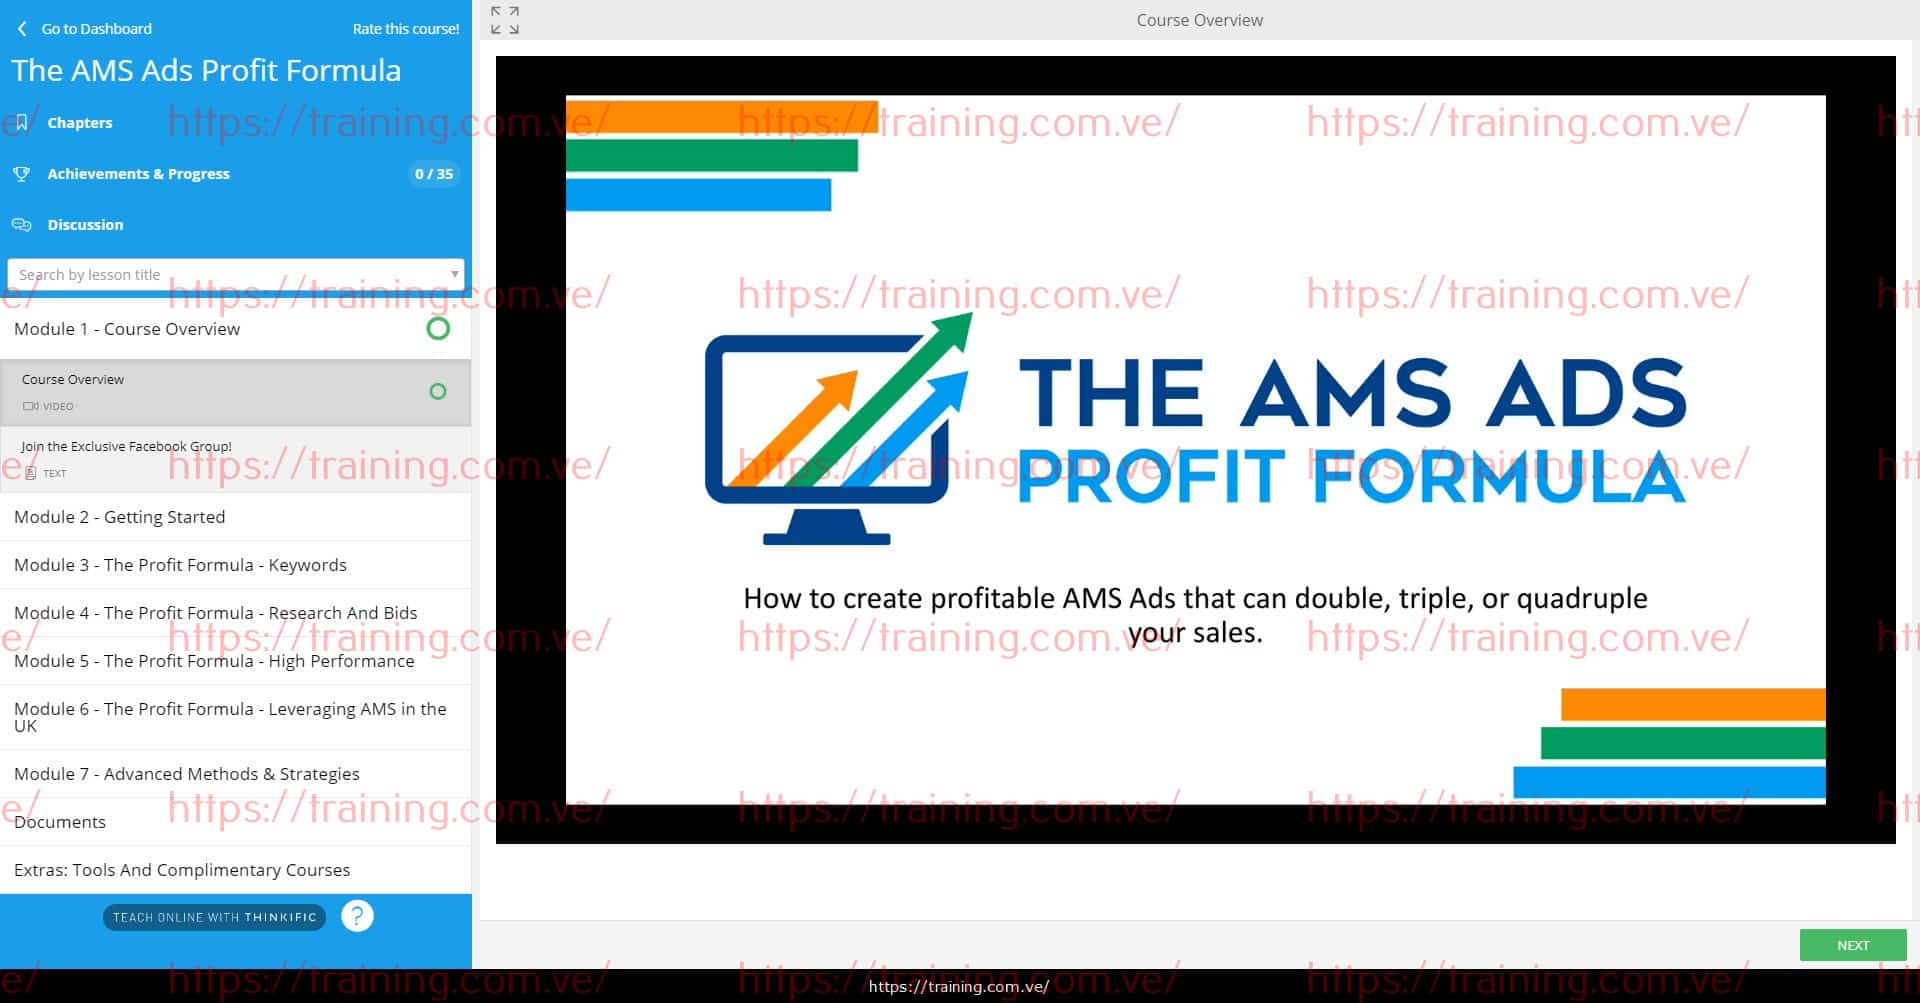 The AMS Ads Profit Formula by Marco Discount